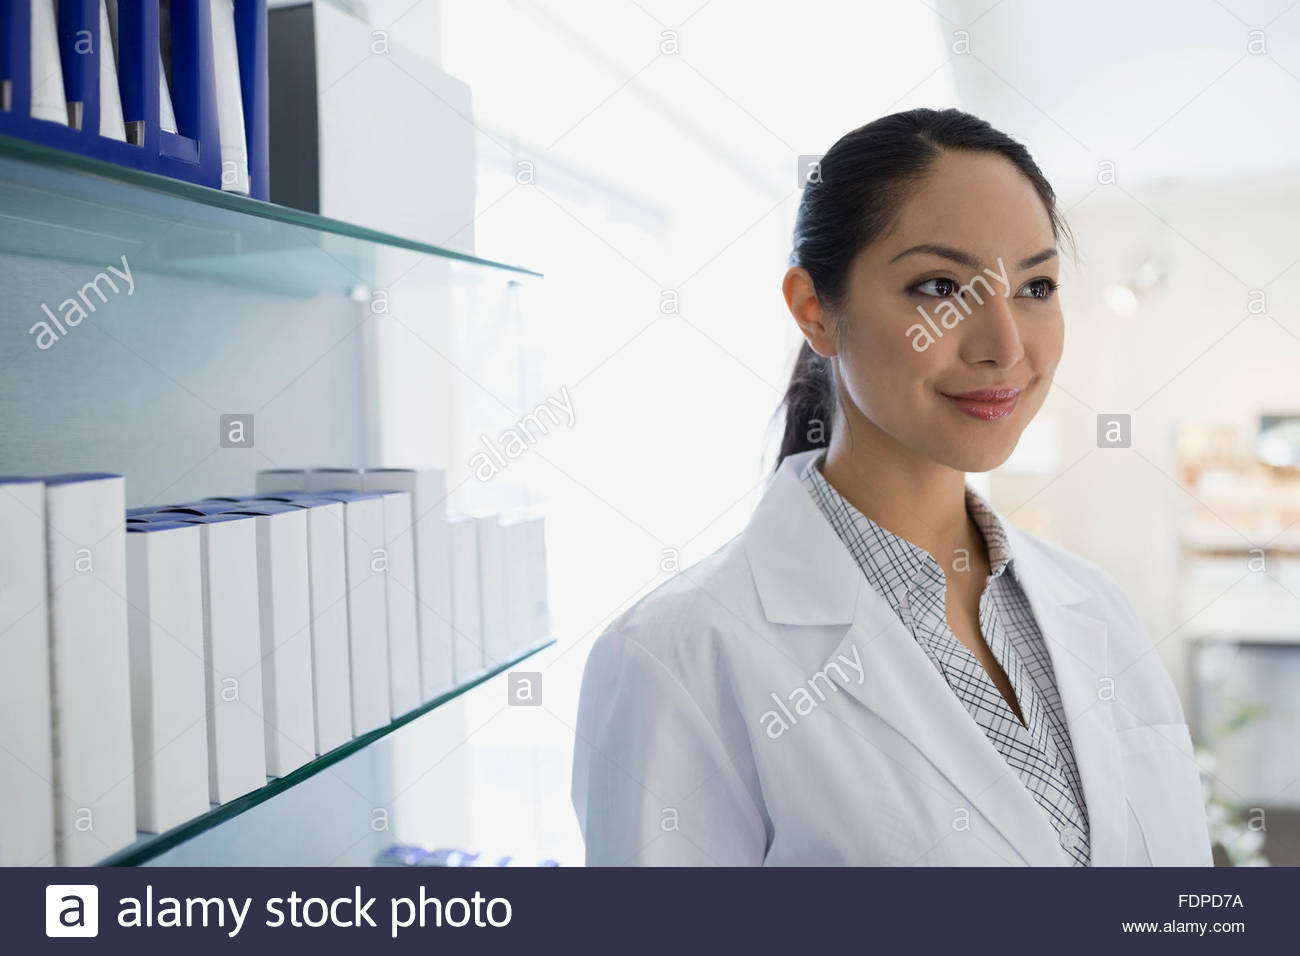 smiling doctors office 25-29 years aesthetician - Stock Image